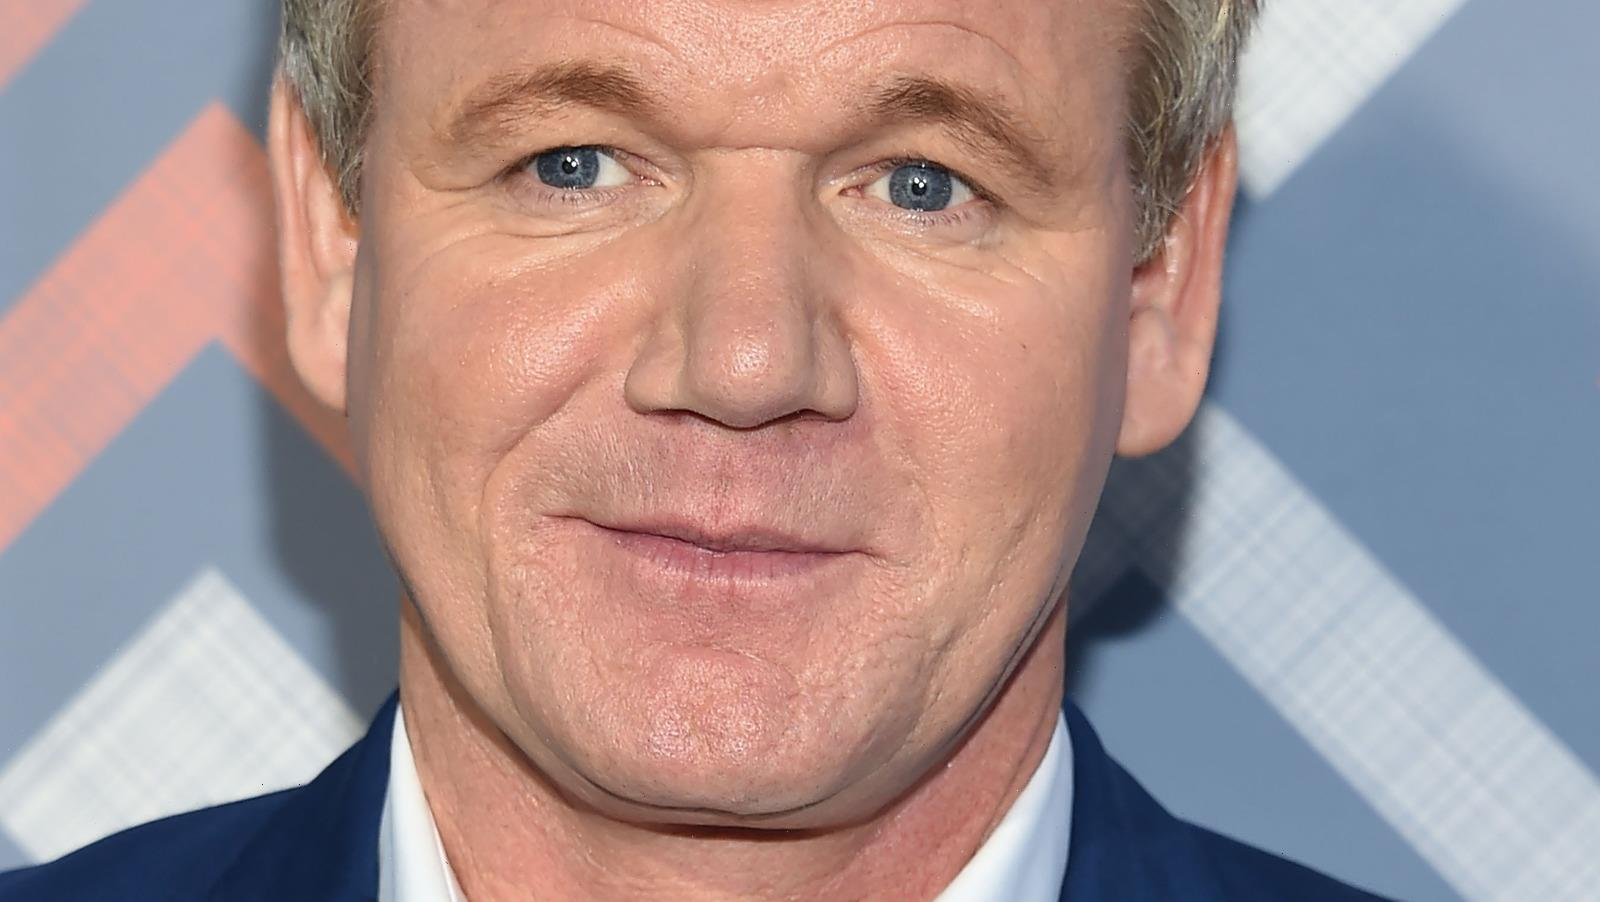 Gordon Ramsay And Bobby Flays Net Worth: Which TV Chef Is Worth More?